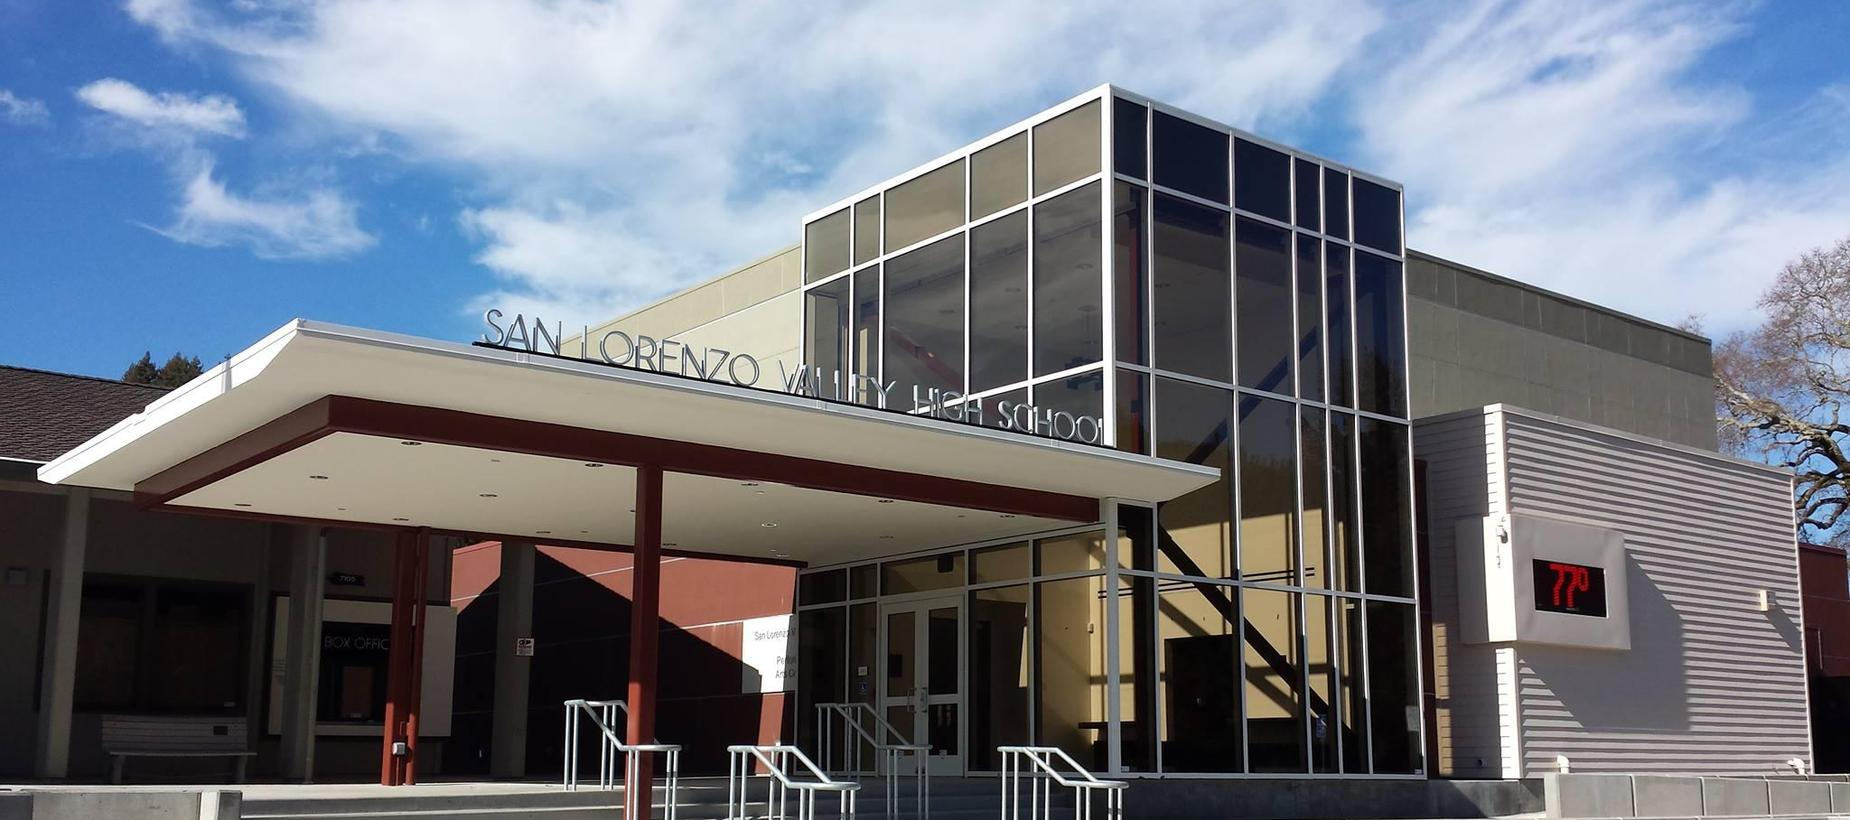 Picture of the SLV Performing Arts Center / entrance to the SLVHS campus